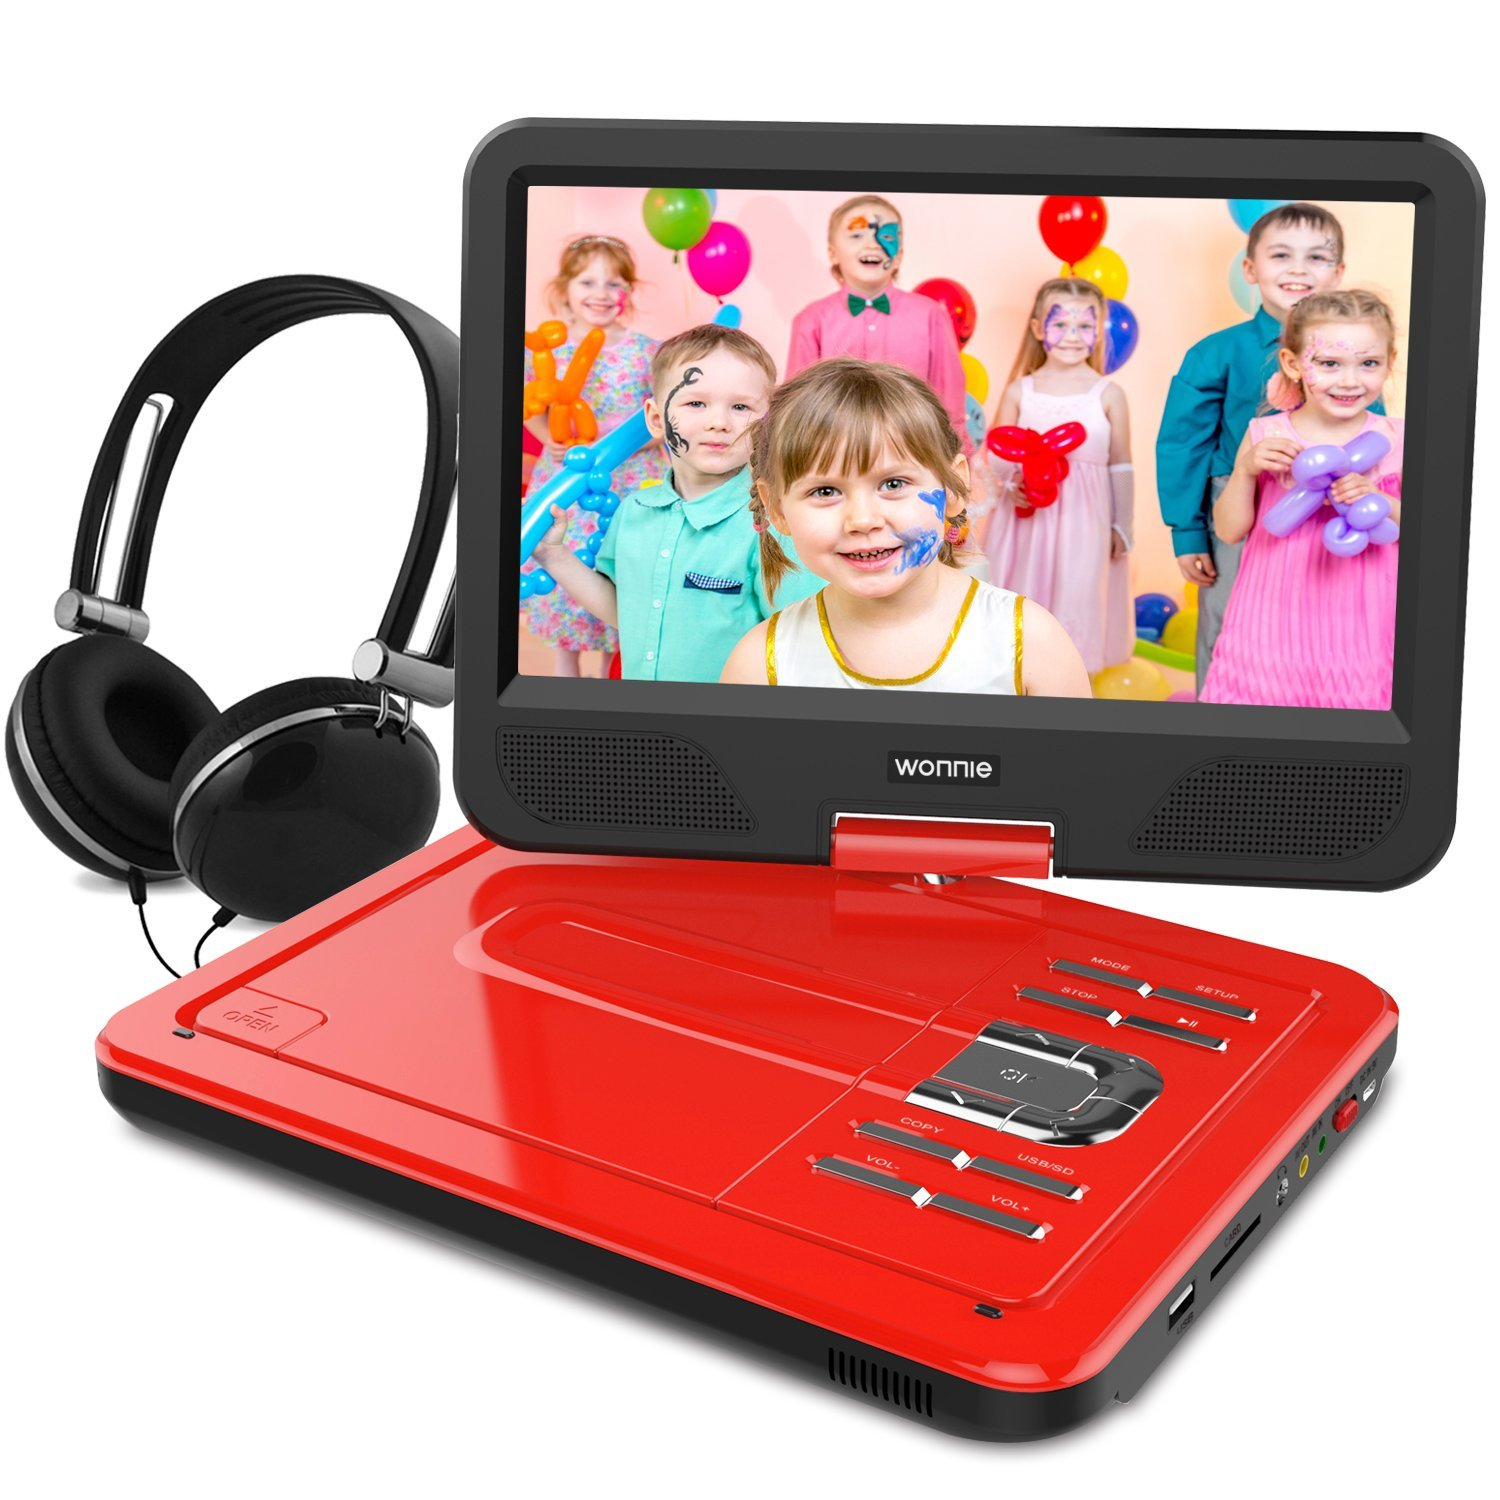 10.5 Inch Portable DVD Player with Swivel Screen, USB/SD Slot (RED)